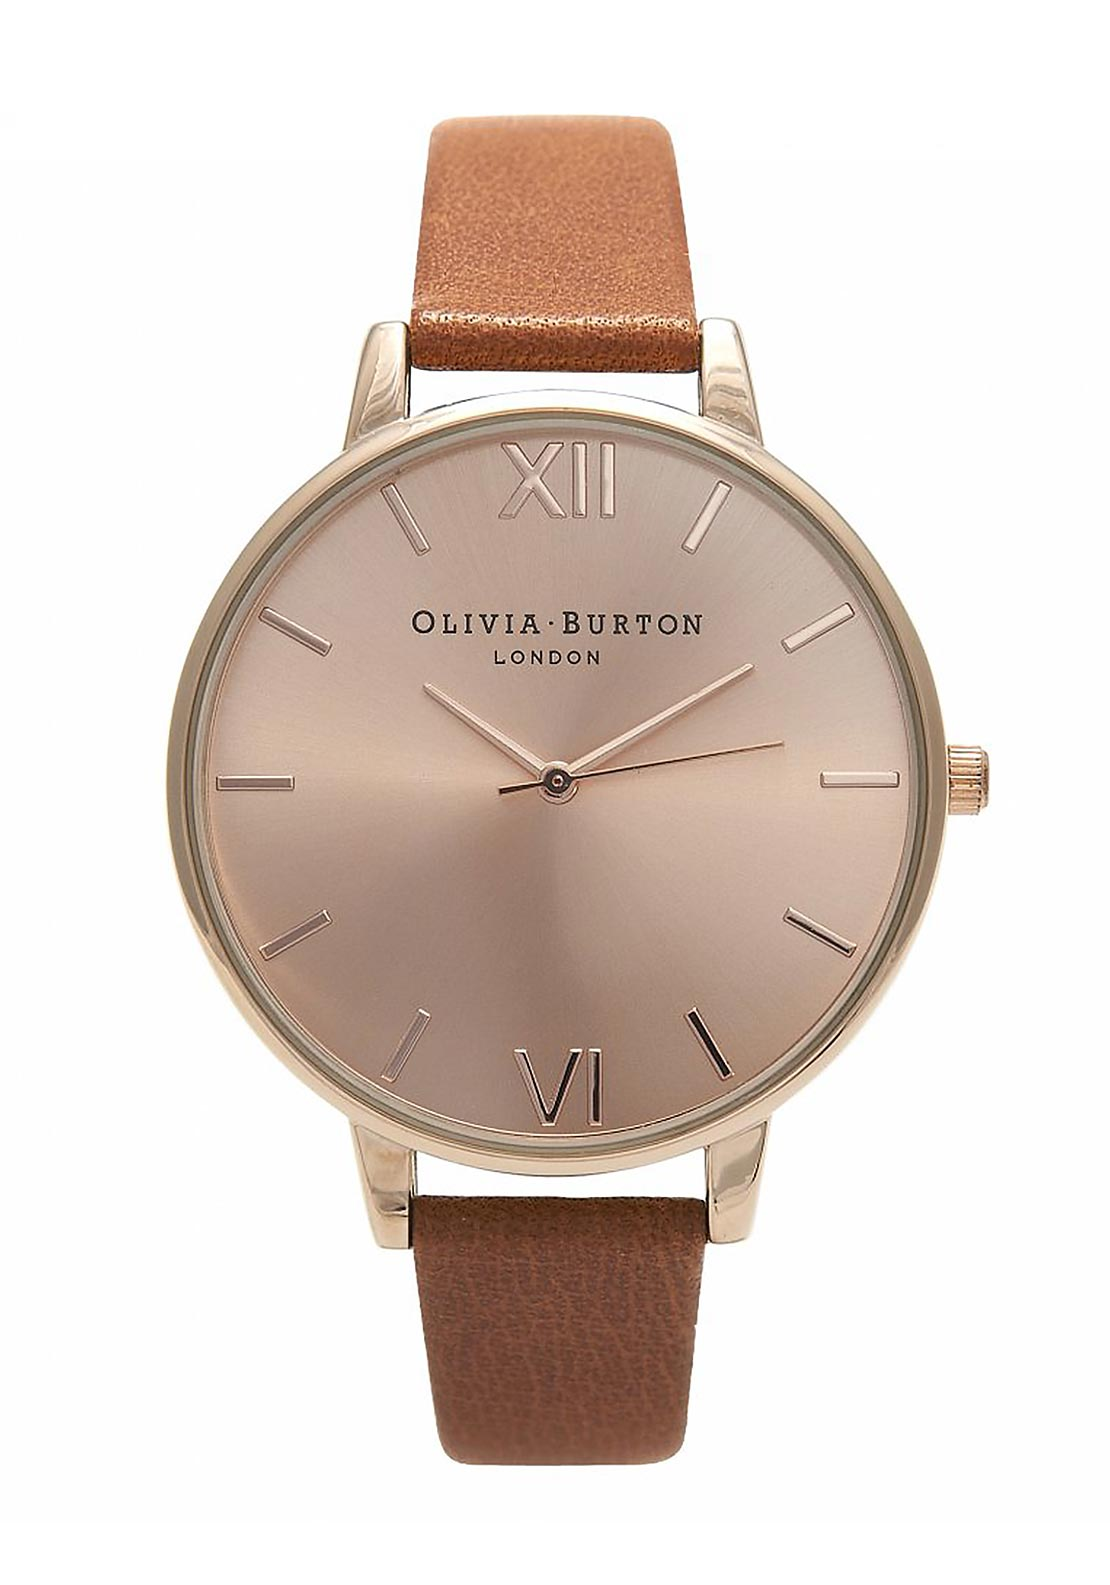 Olivia Burton Big Dial Watch, Tan & Rose Gold